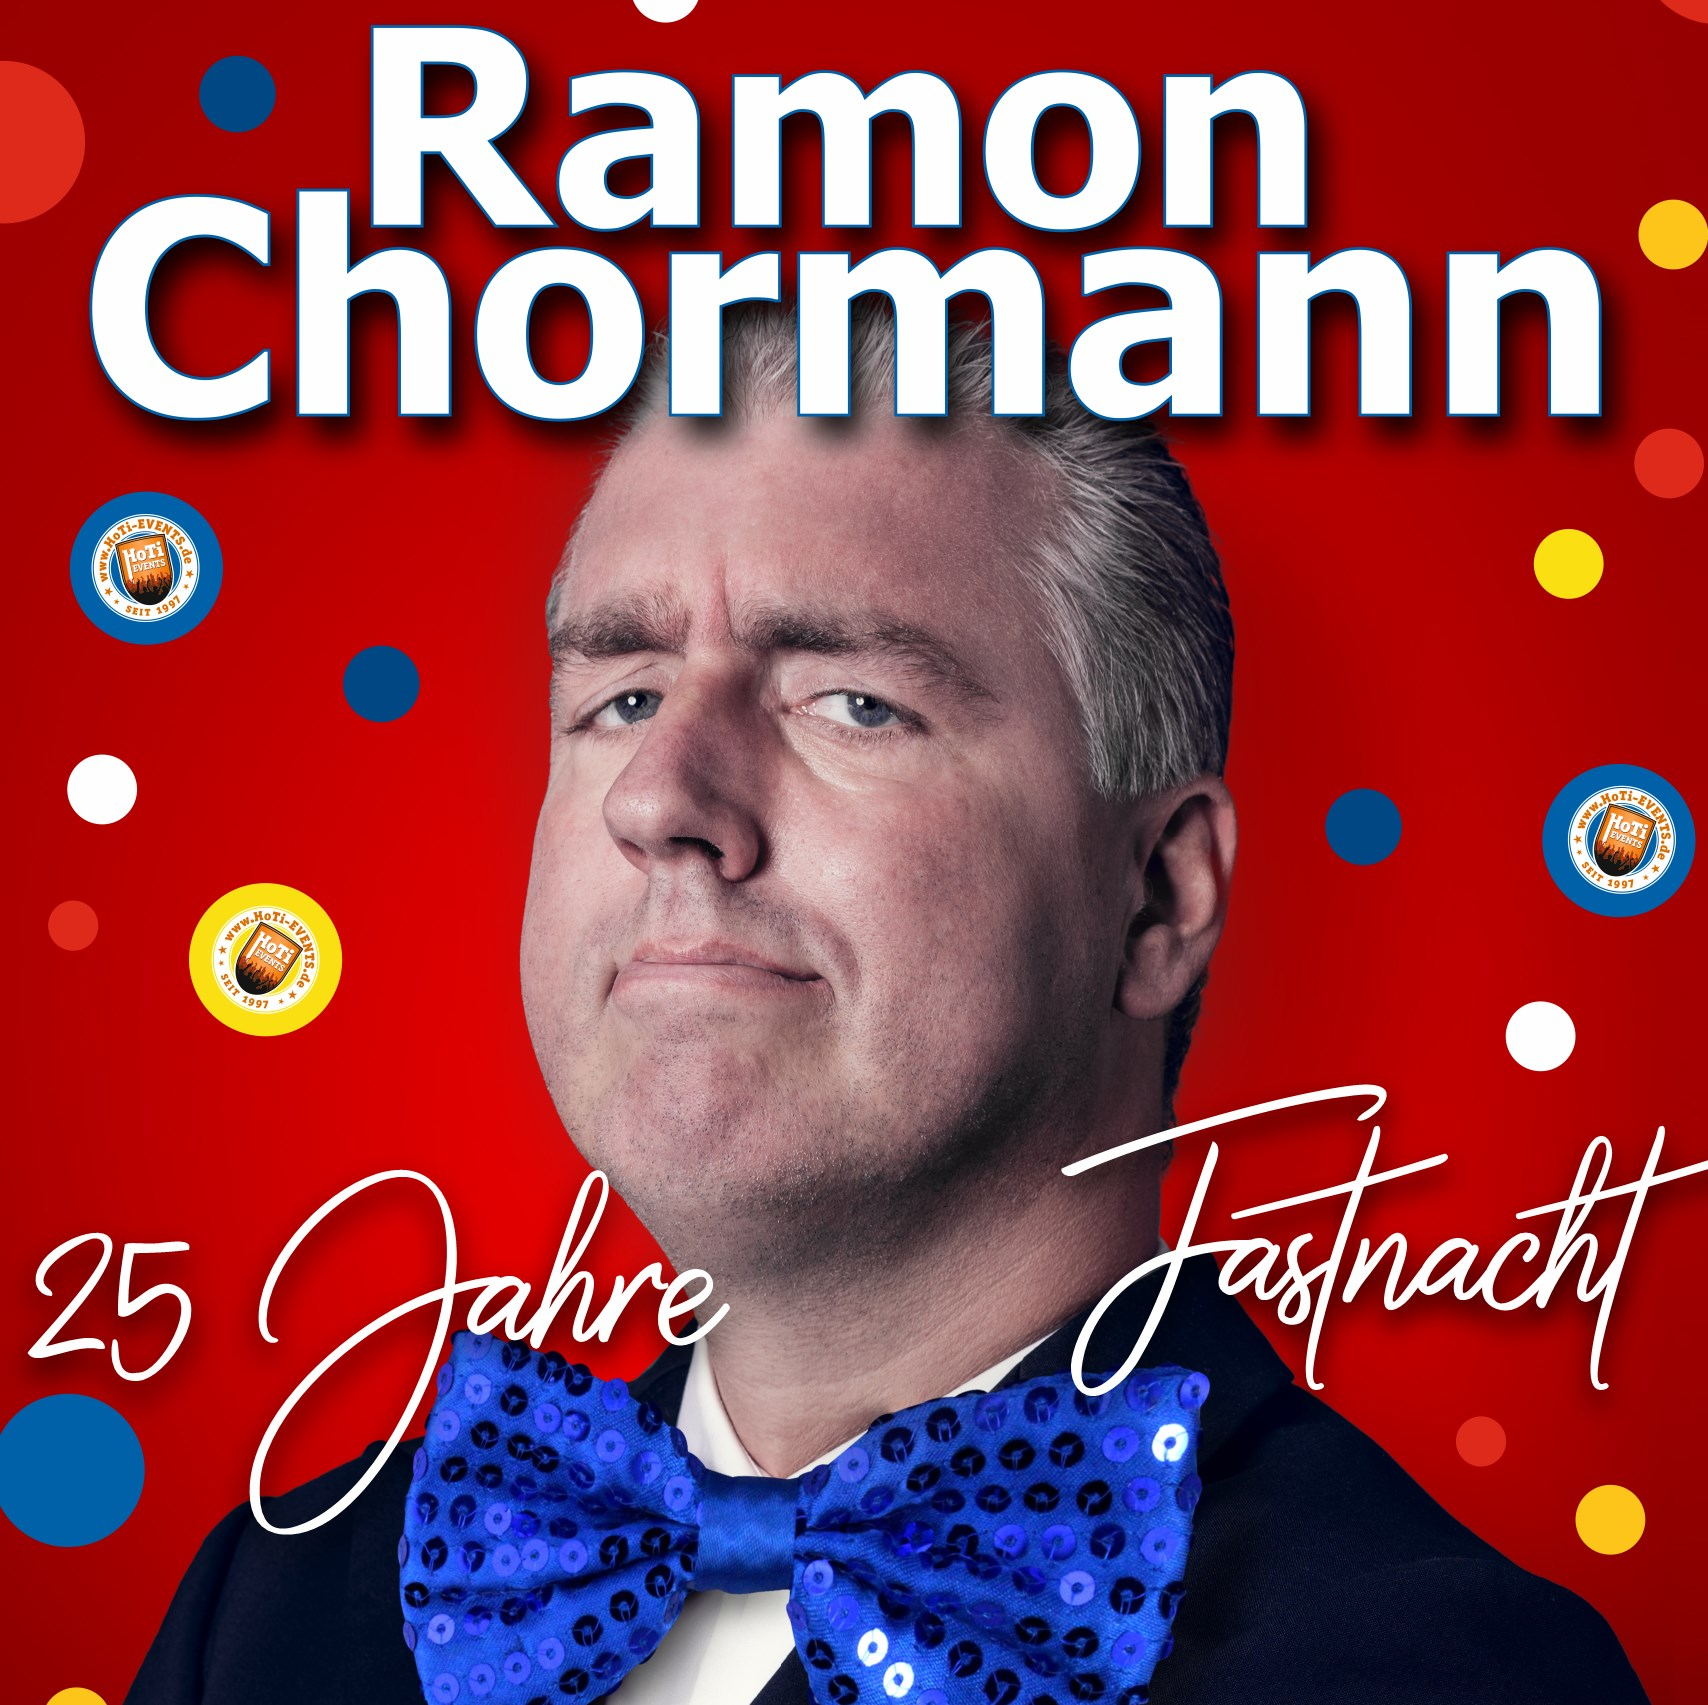 20. Jan. 2019 - Ramon Chormann